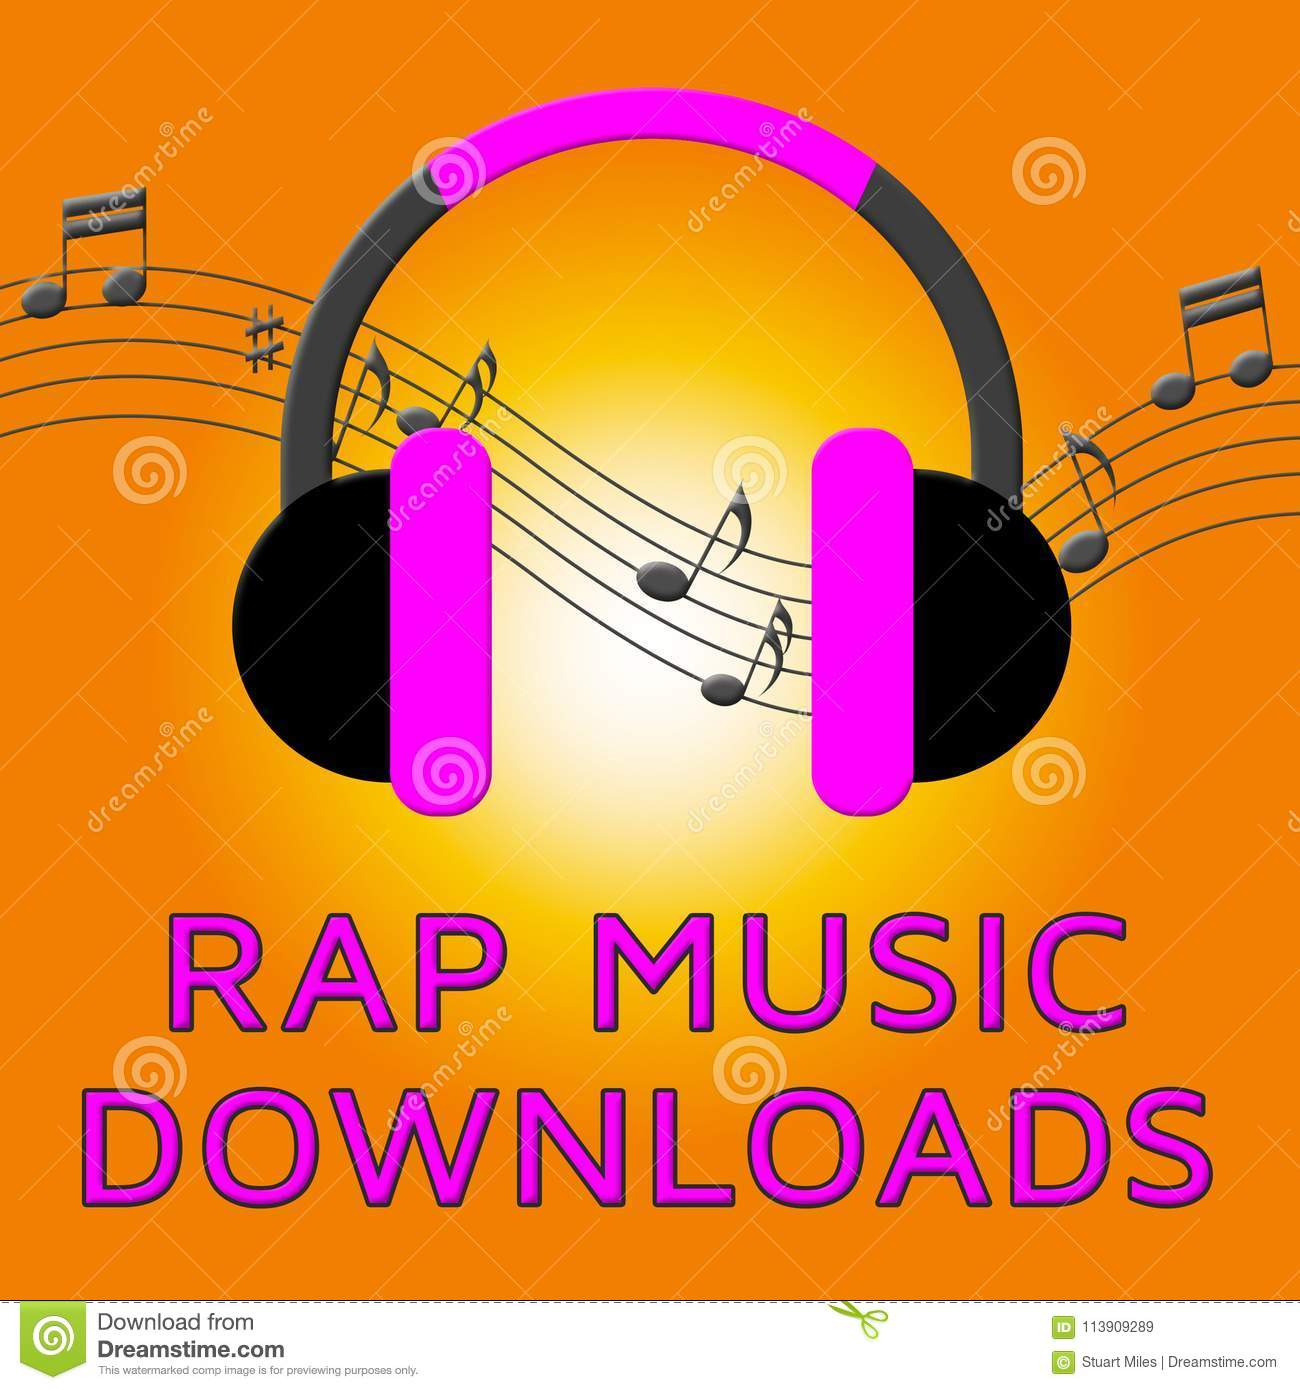 Top 3 rap music download free websites | leawo tutorial center.